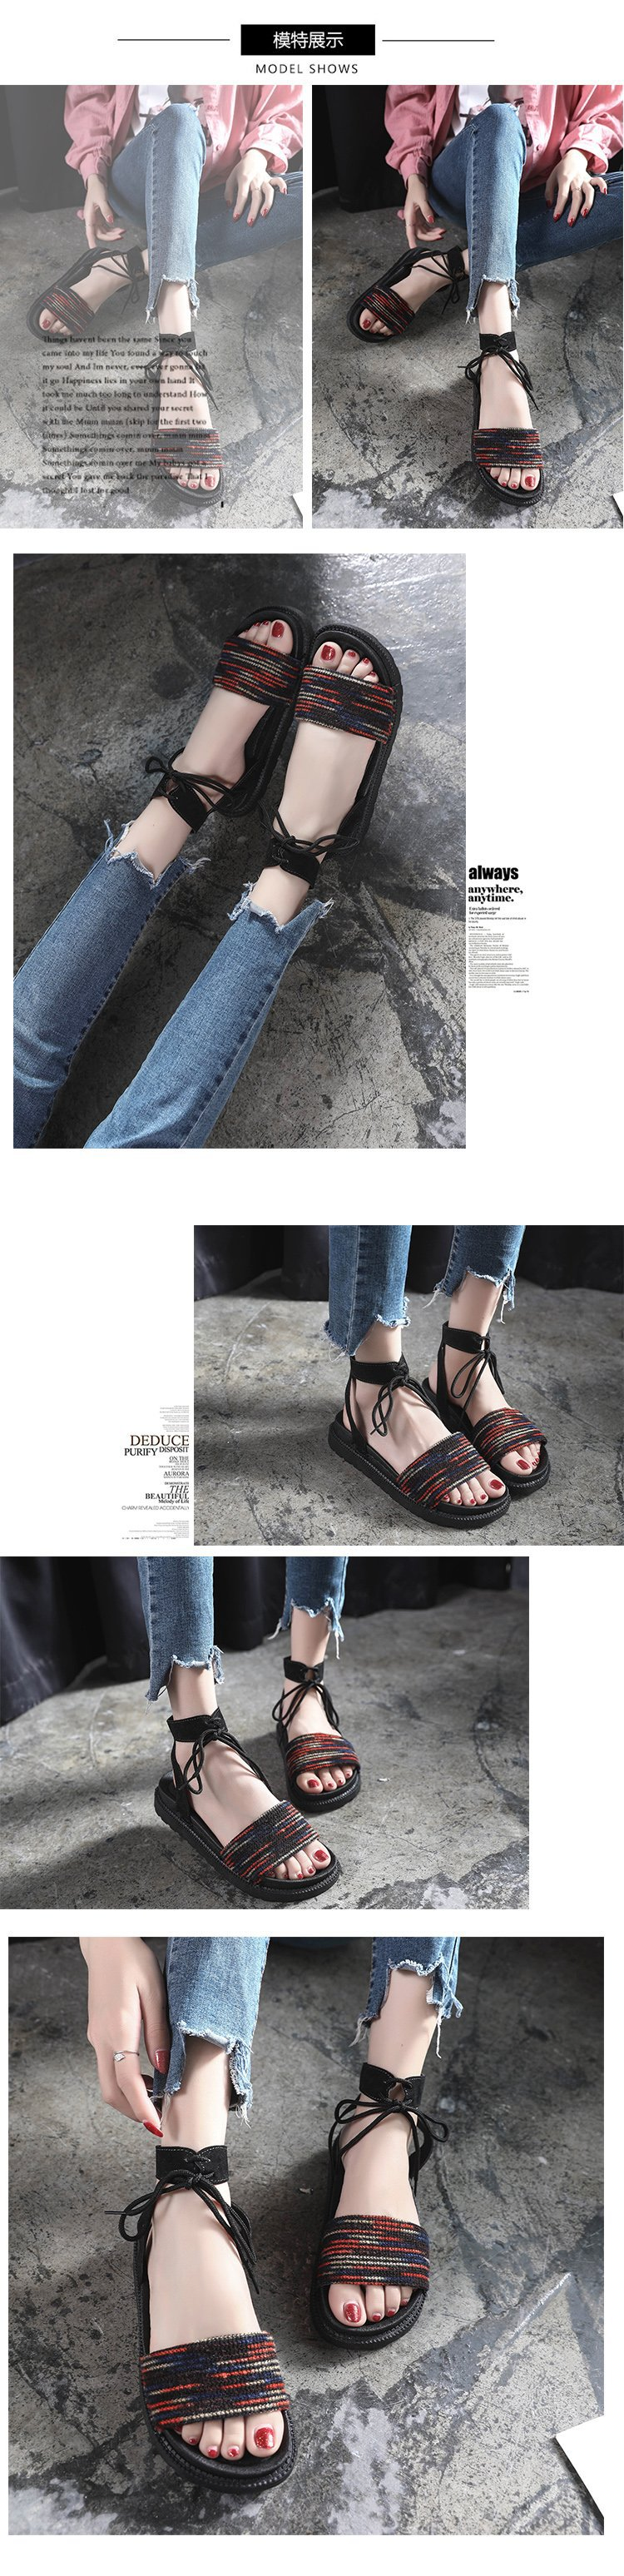 Casual Lace-up Rome Gladiator Women Sandals Solid Ankle Strap Shallow Women Shoes Summer Fashion Flat Sandals 23